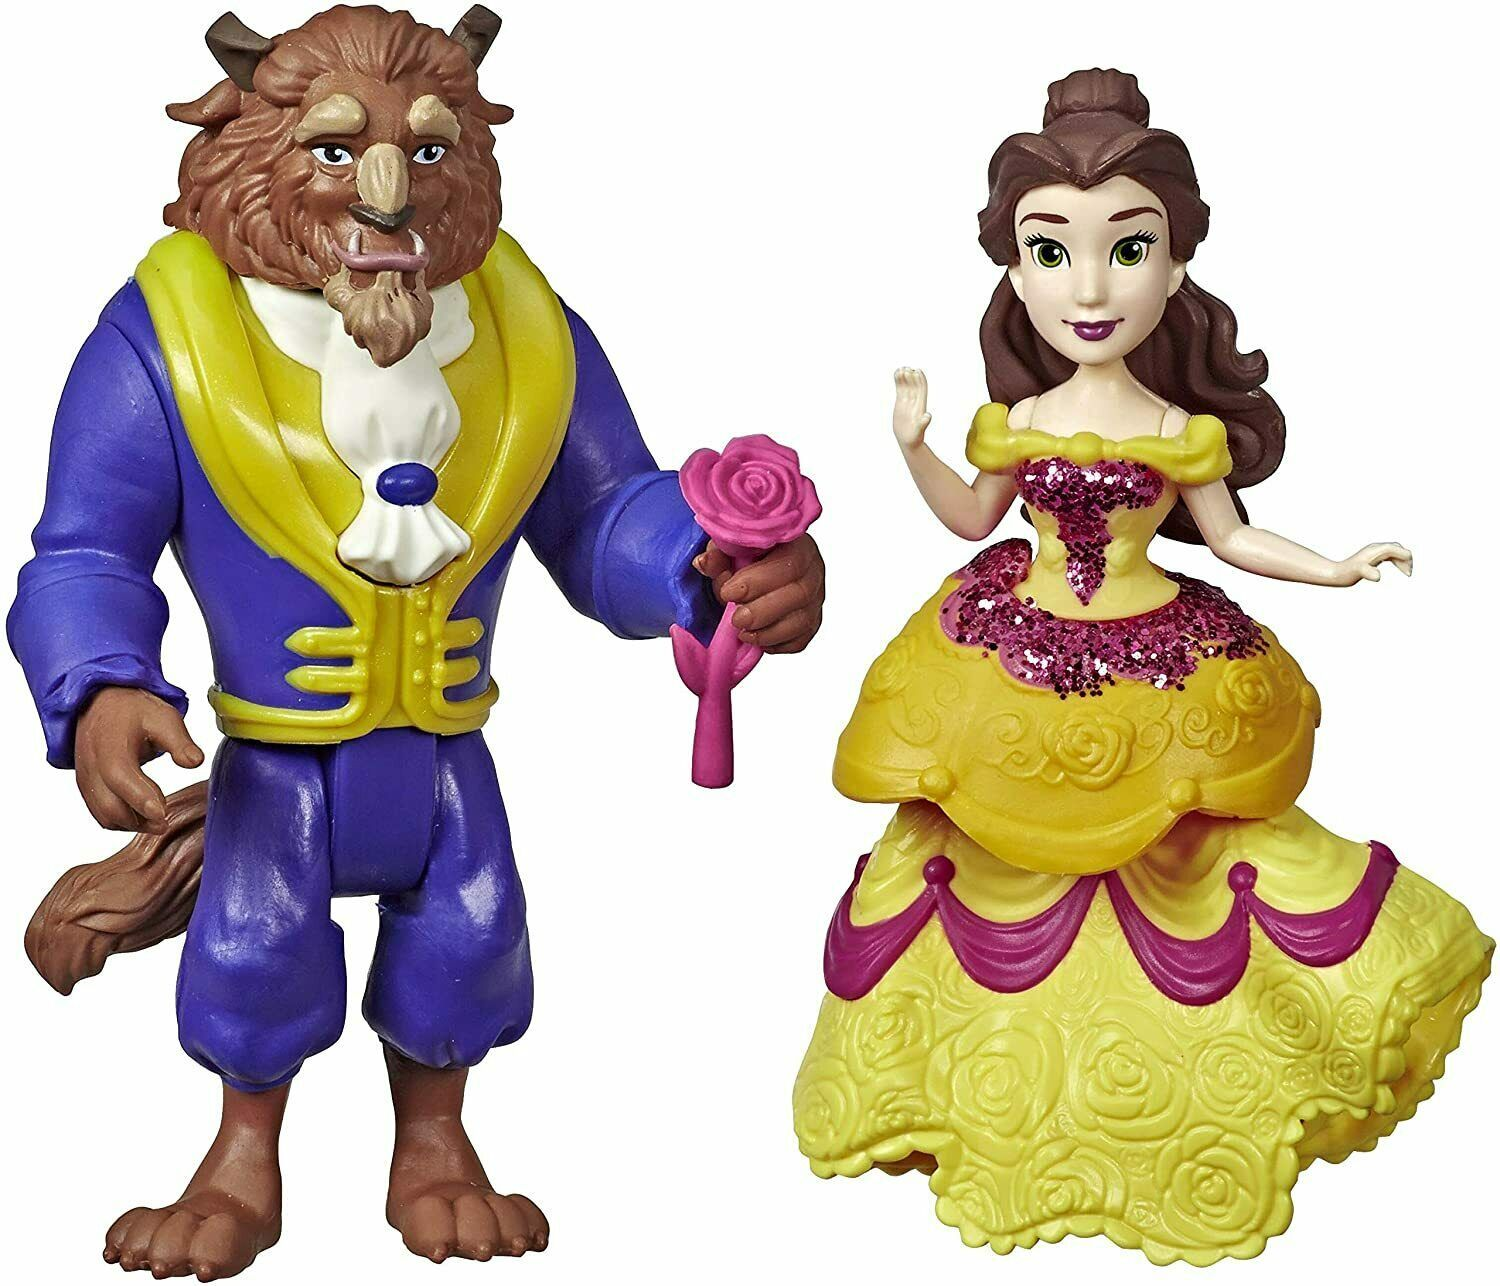 Disney Princess Belle & Beast Collectible Dolls with One-Clip Outfit & Rose Acce - $28.70